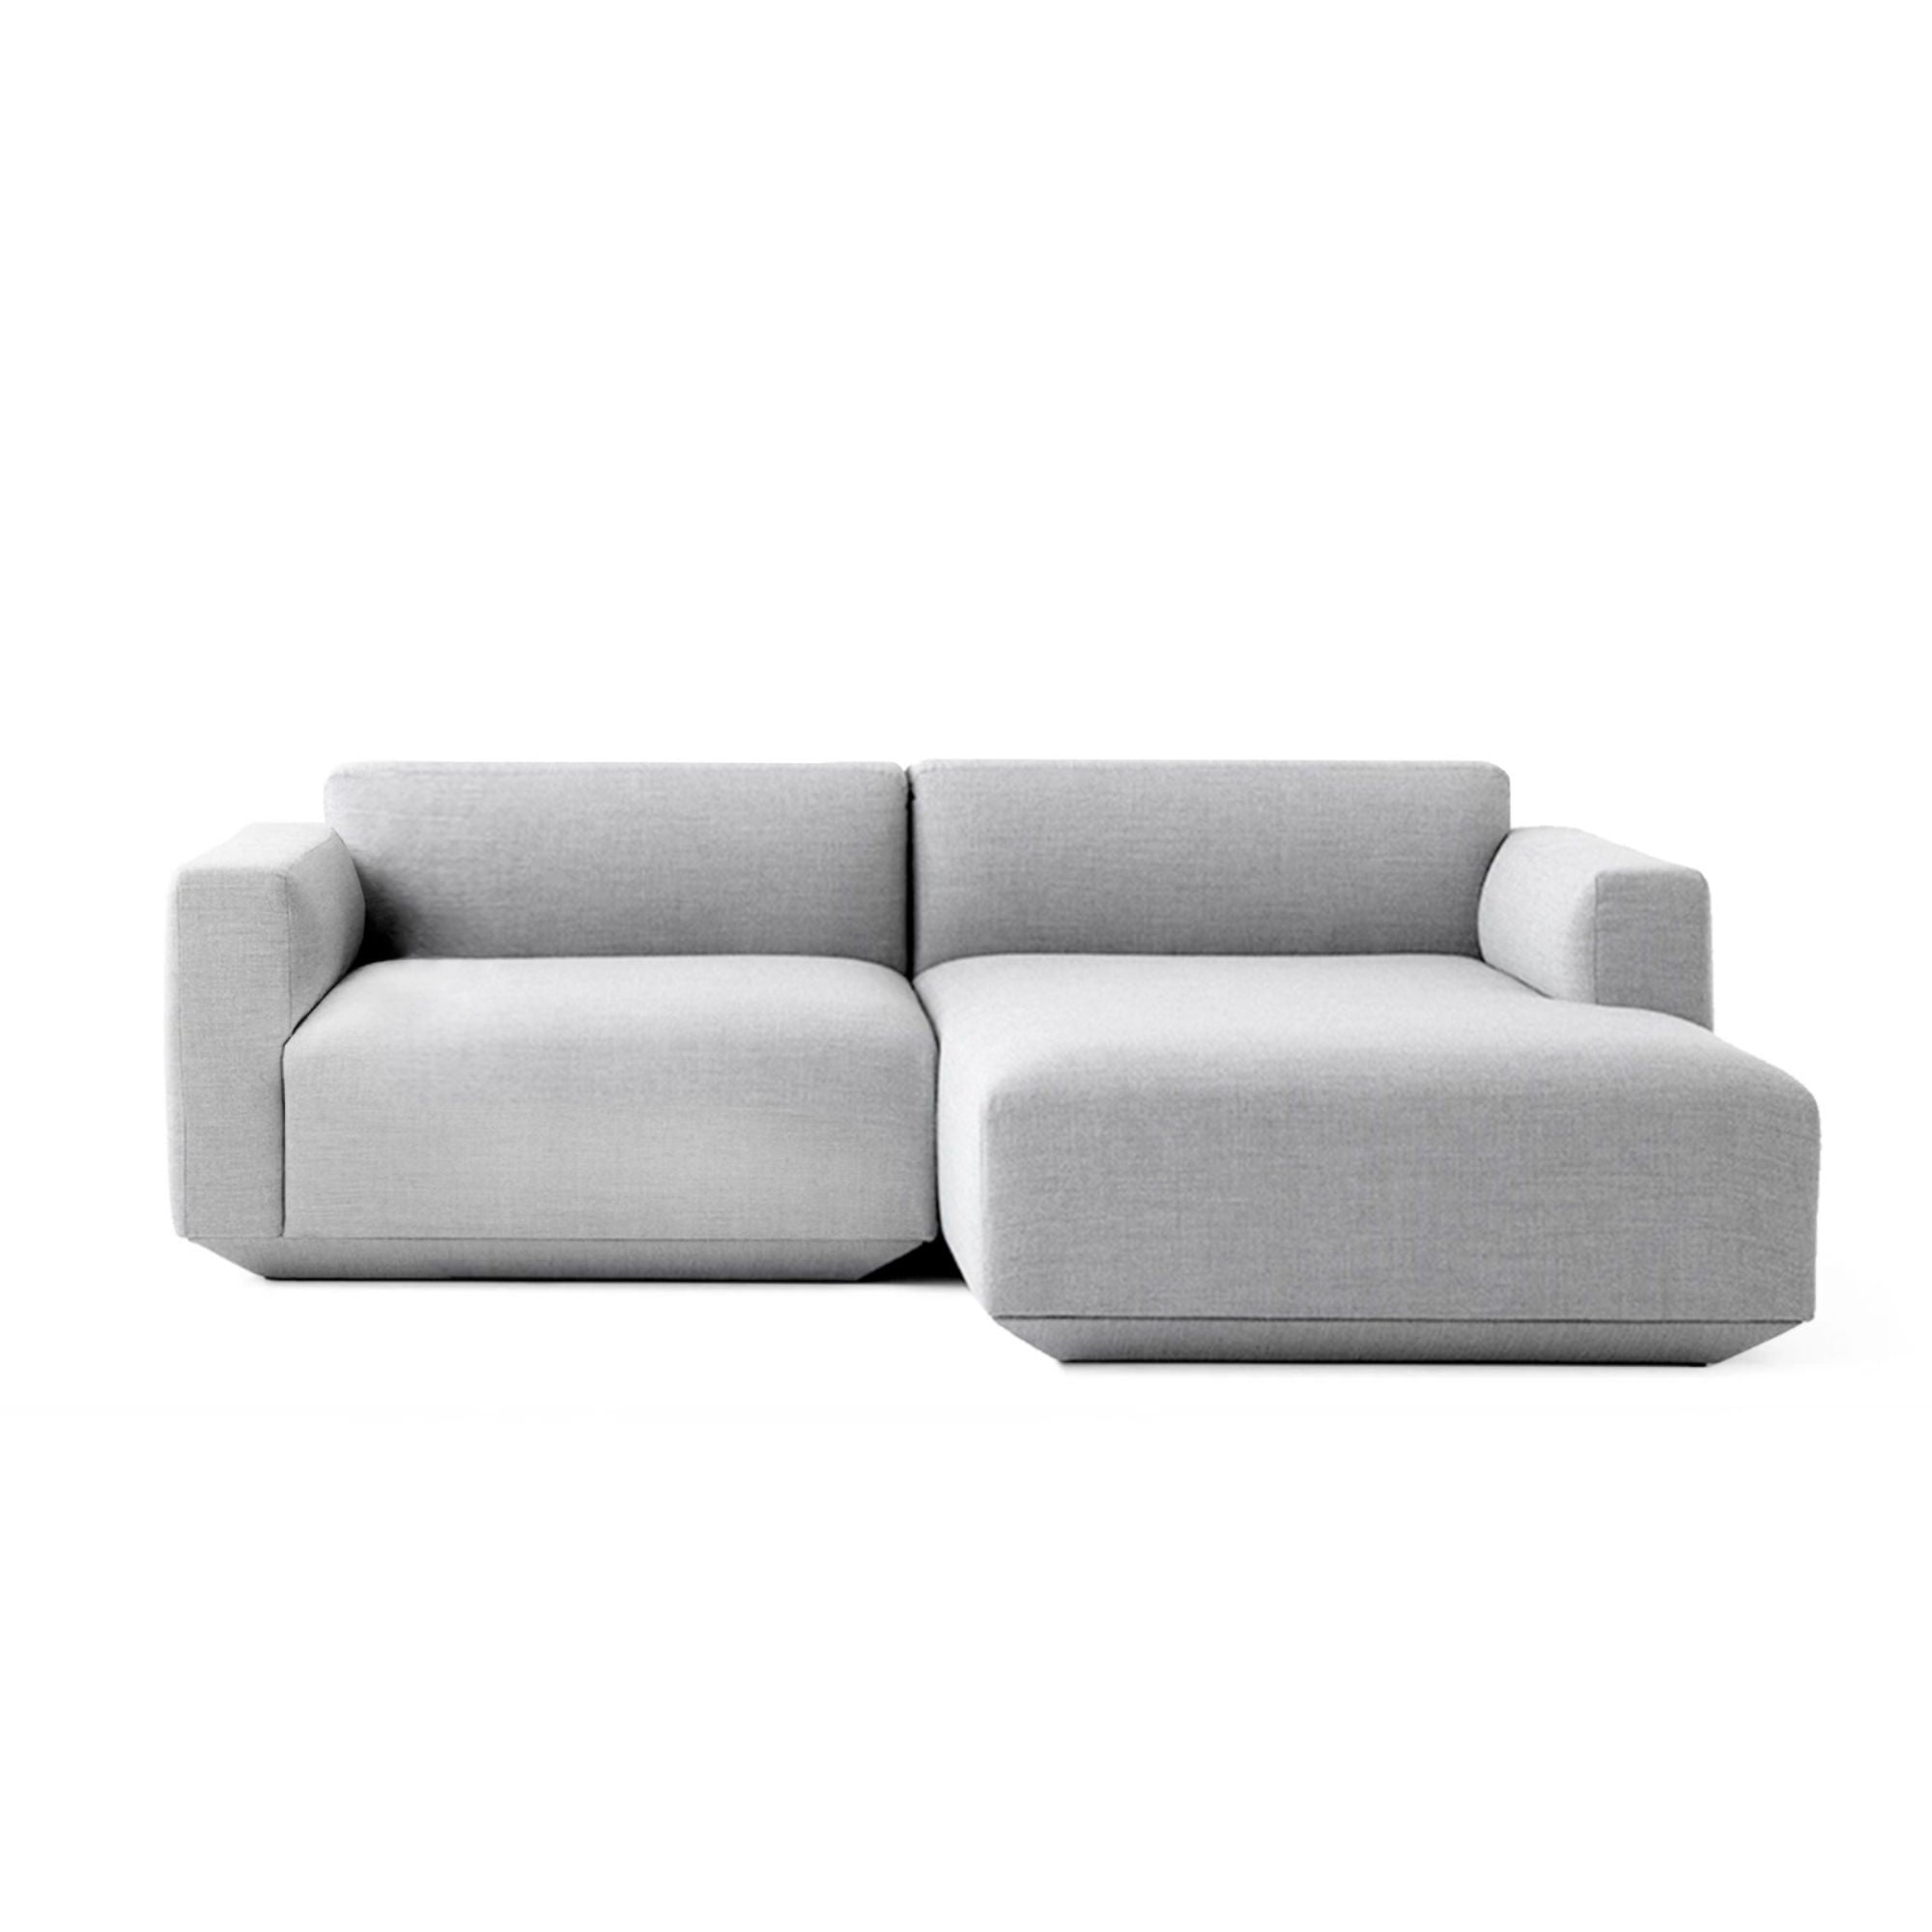 &Tradition Develius Sofa Configuration B , Linara Tweed 443